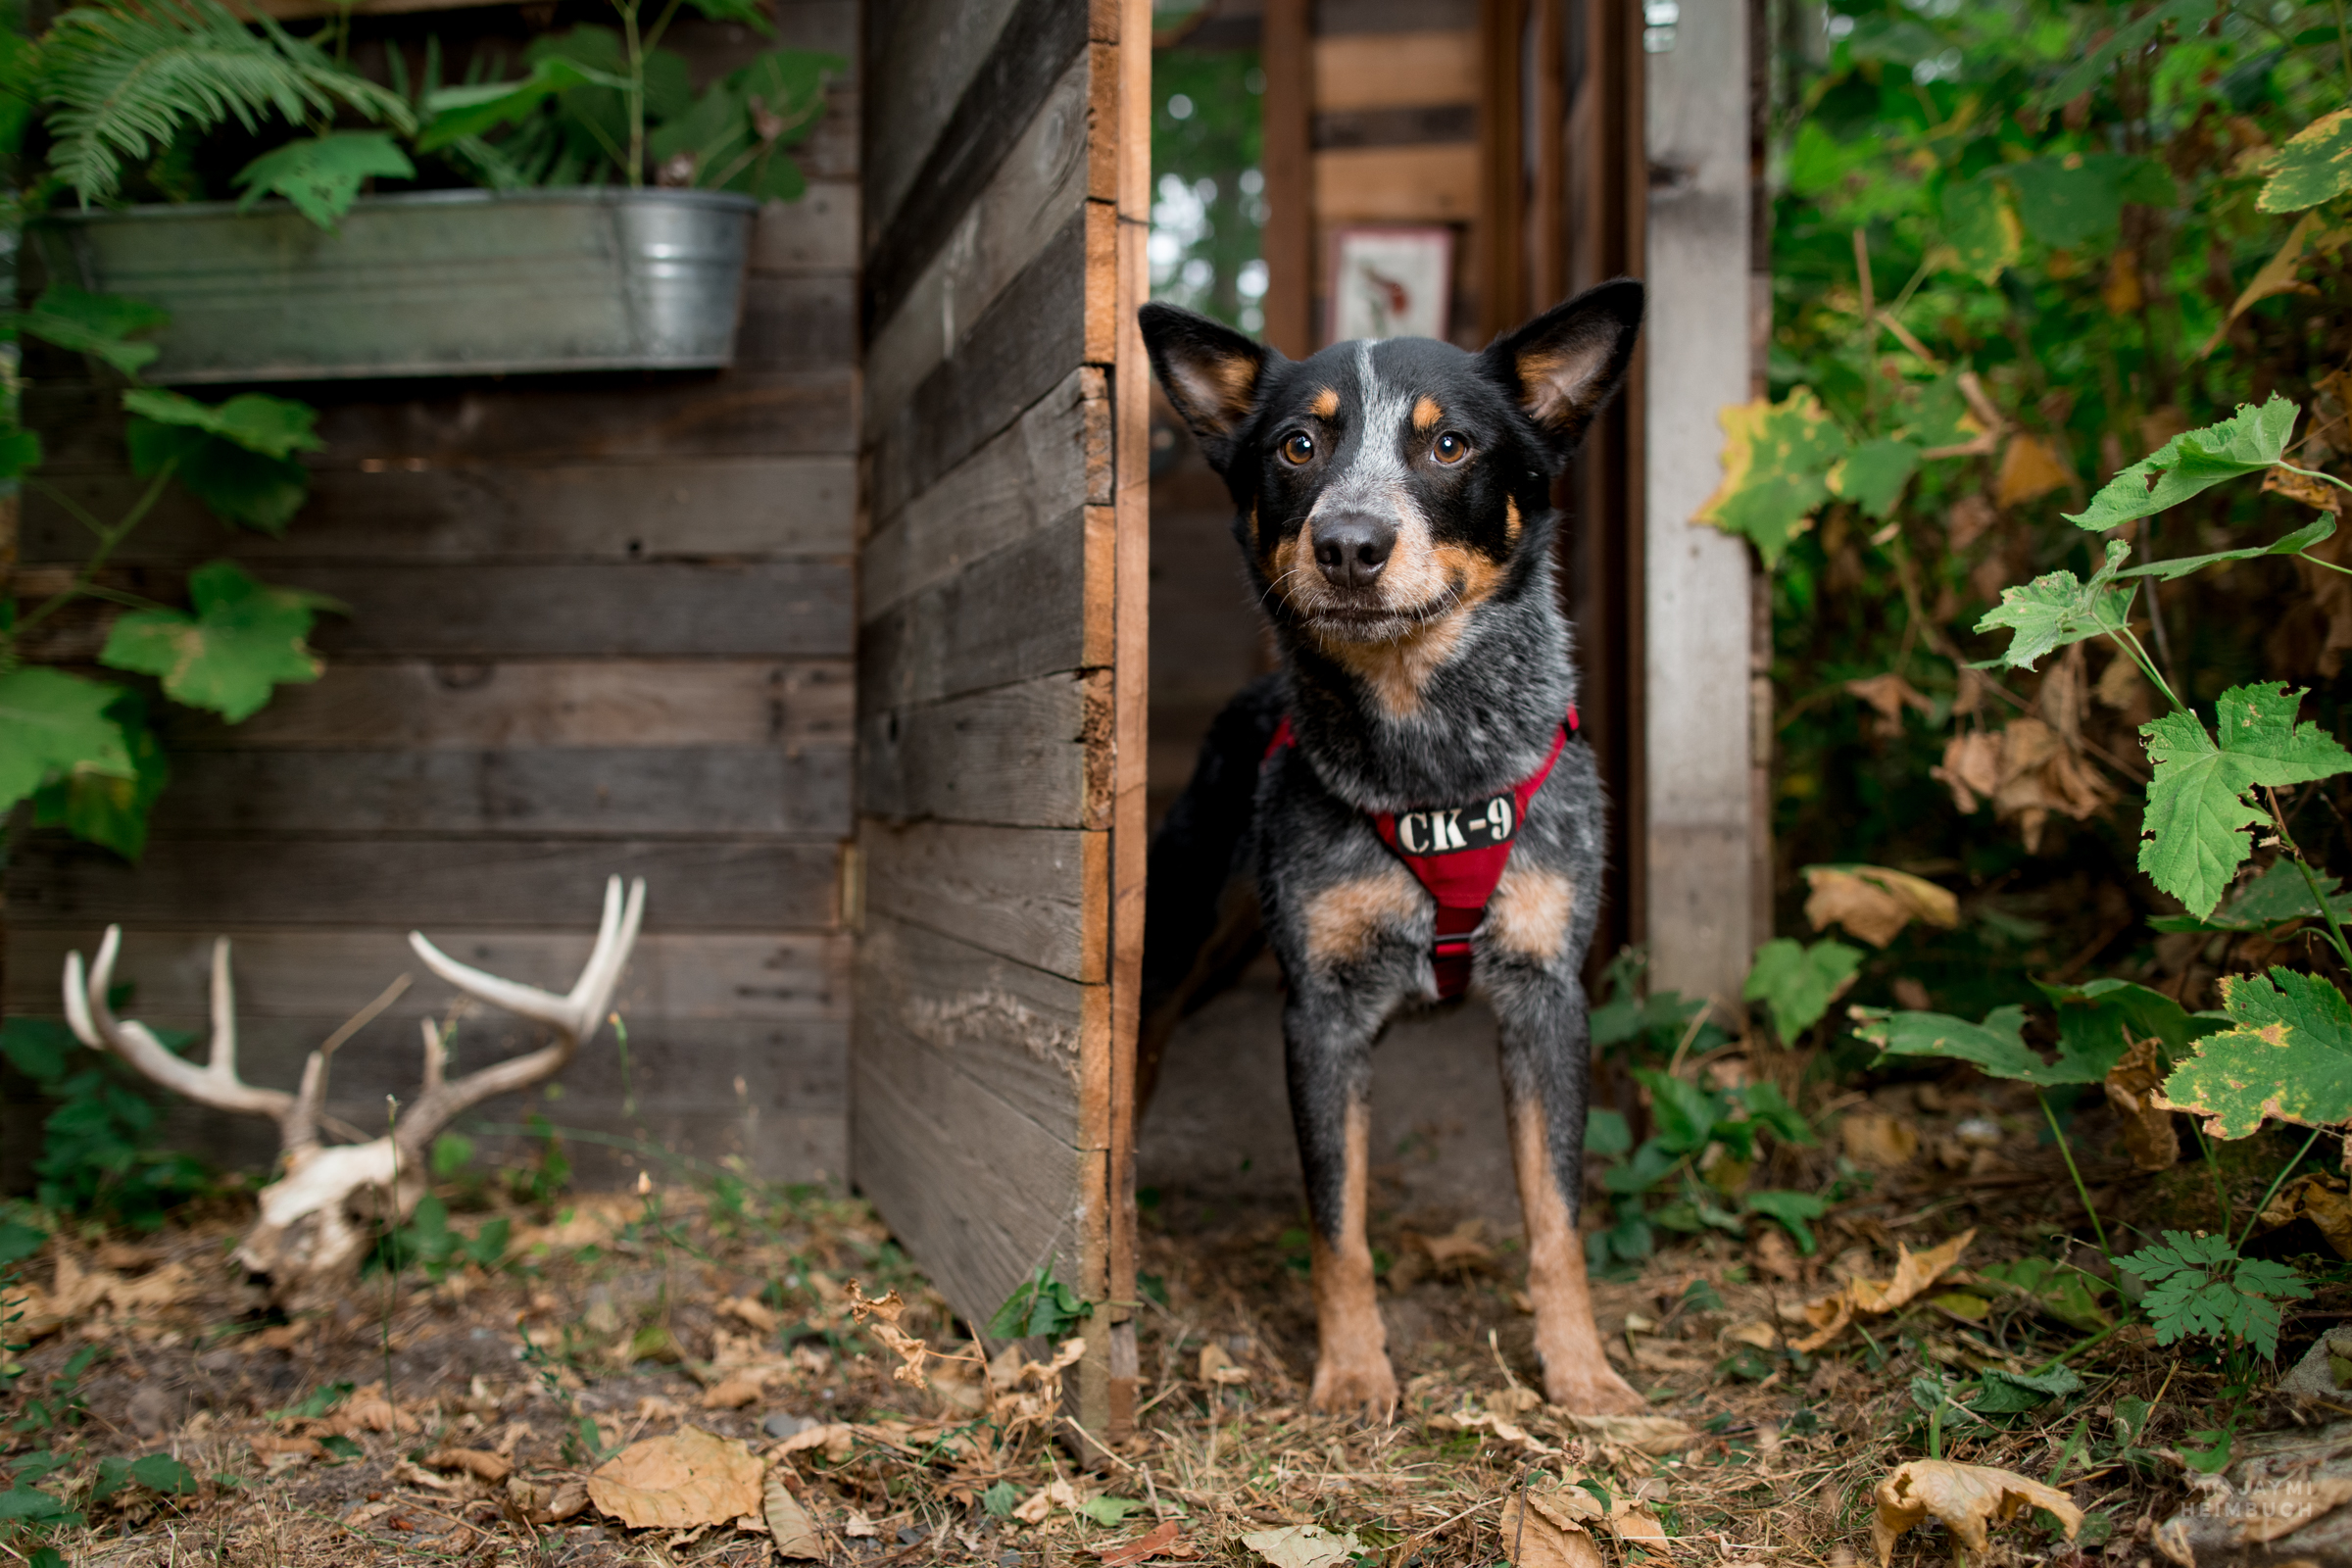 Filson, rescued scent detection dog with Conservation Canines, University of Washington's Center for Conservation Biology